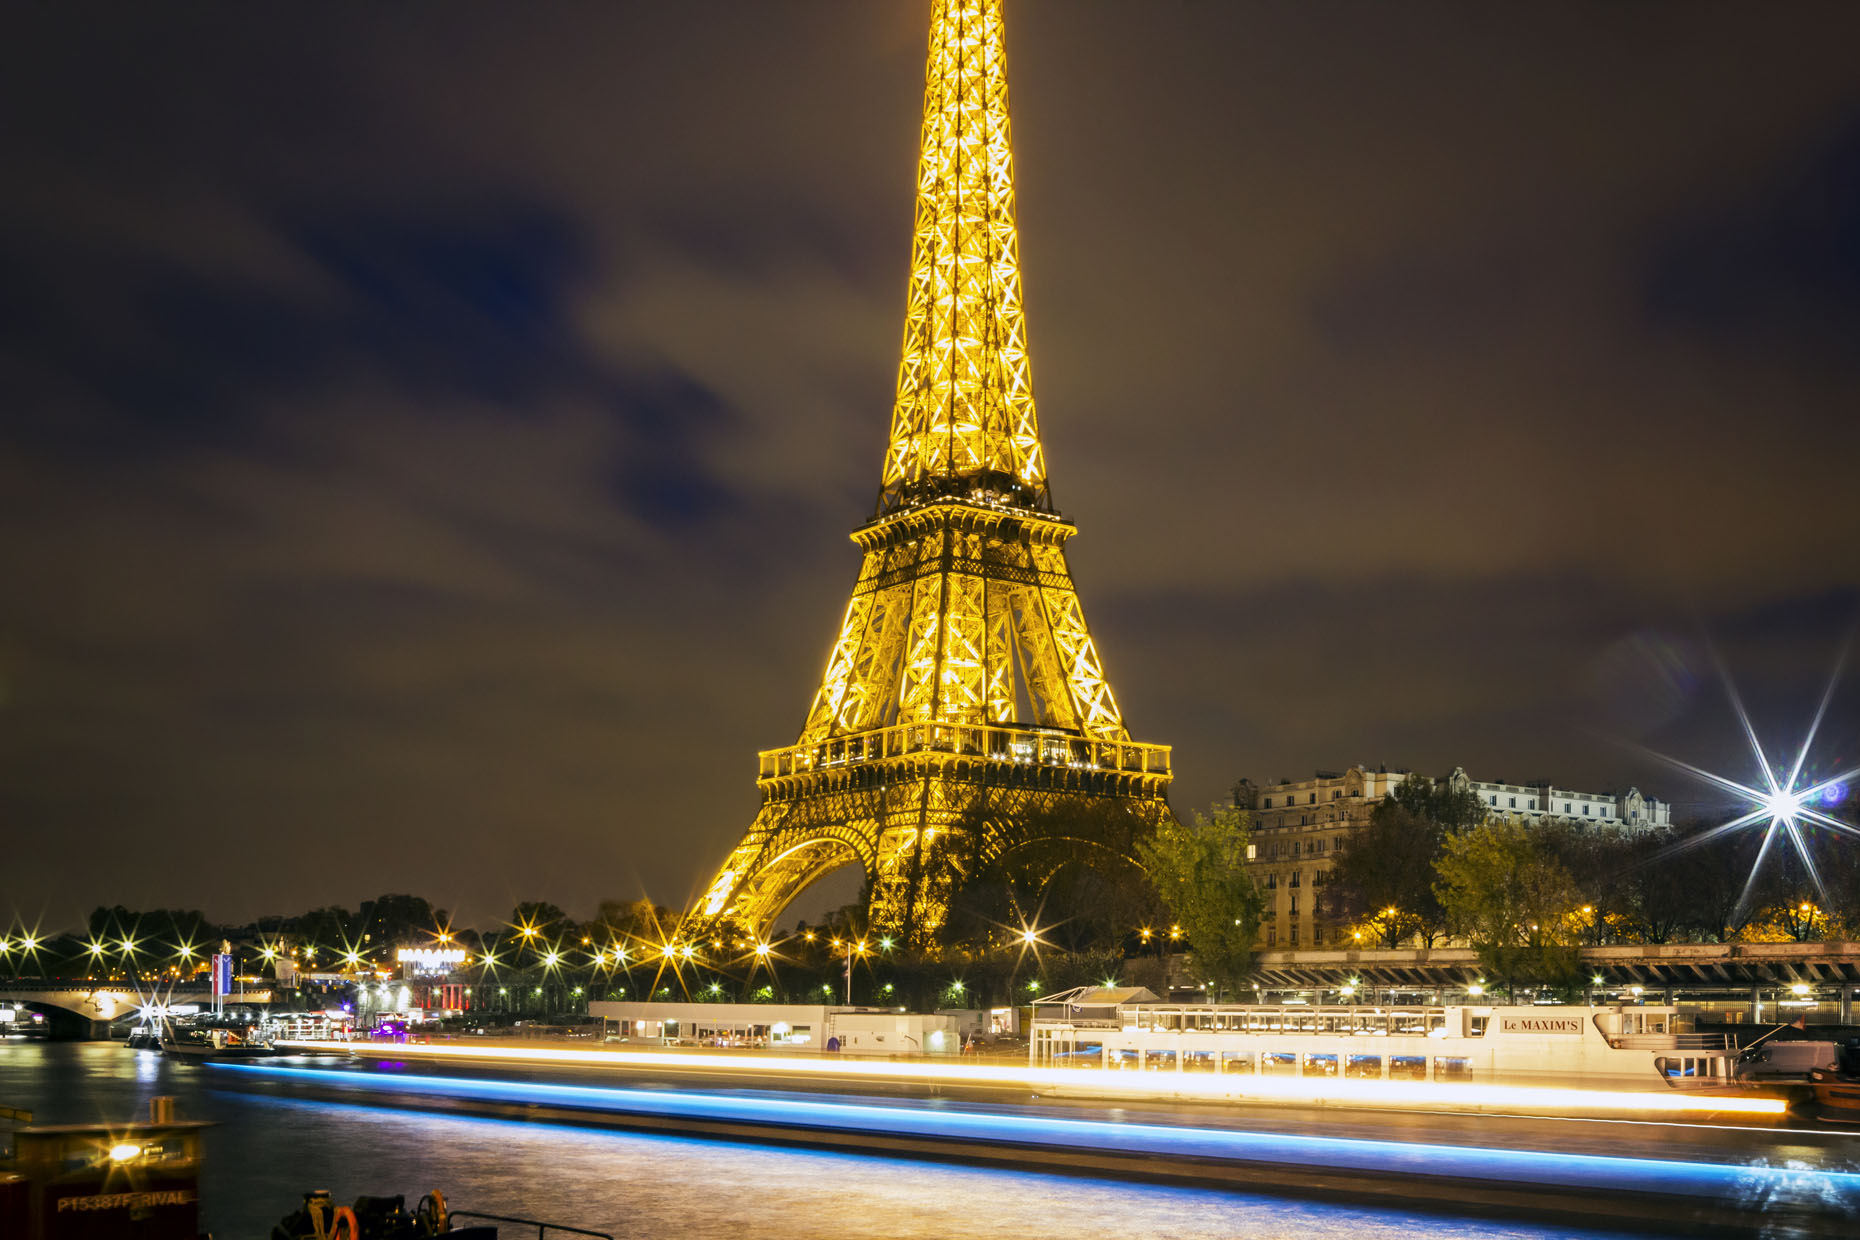 France_Paris_EiffelTowerTwilight_08_webuse.jpg